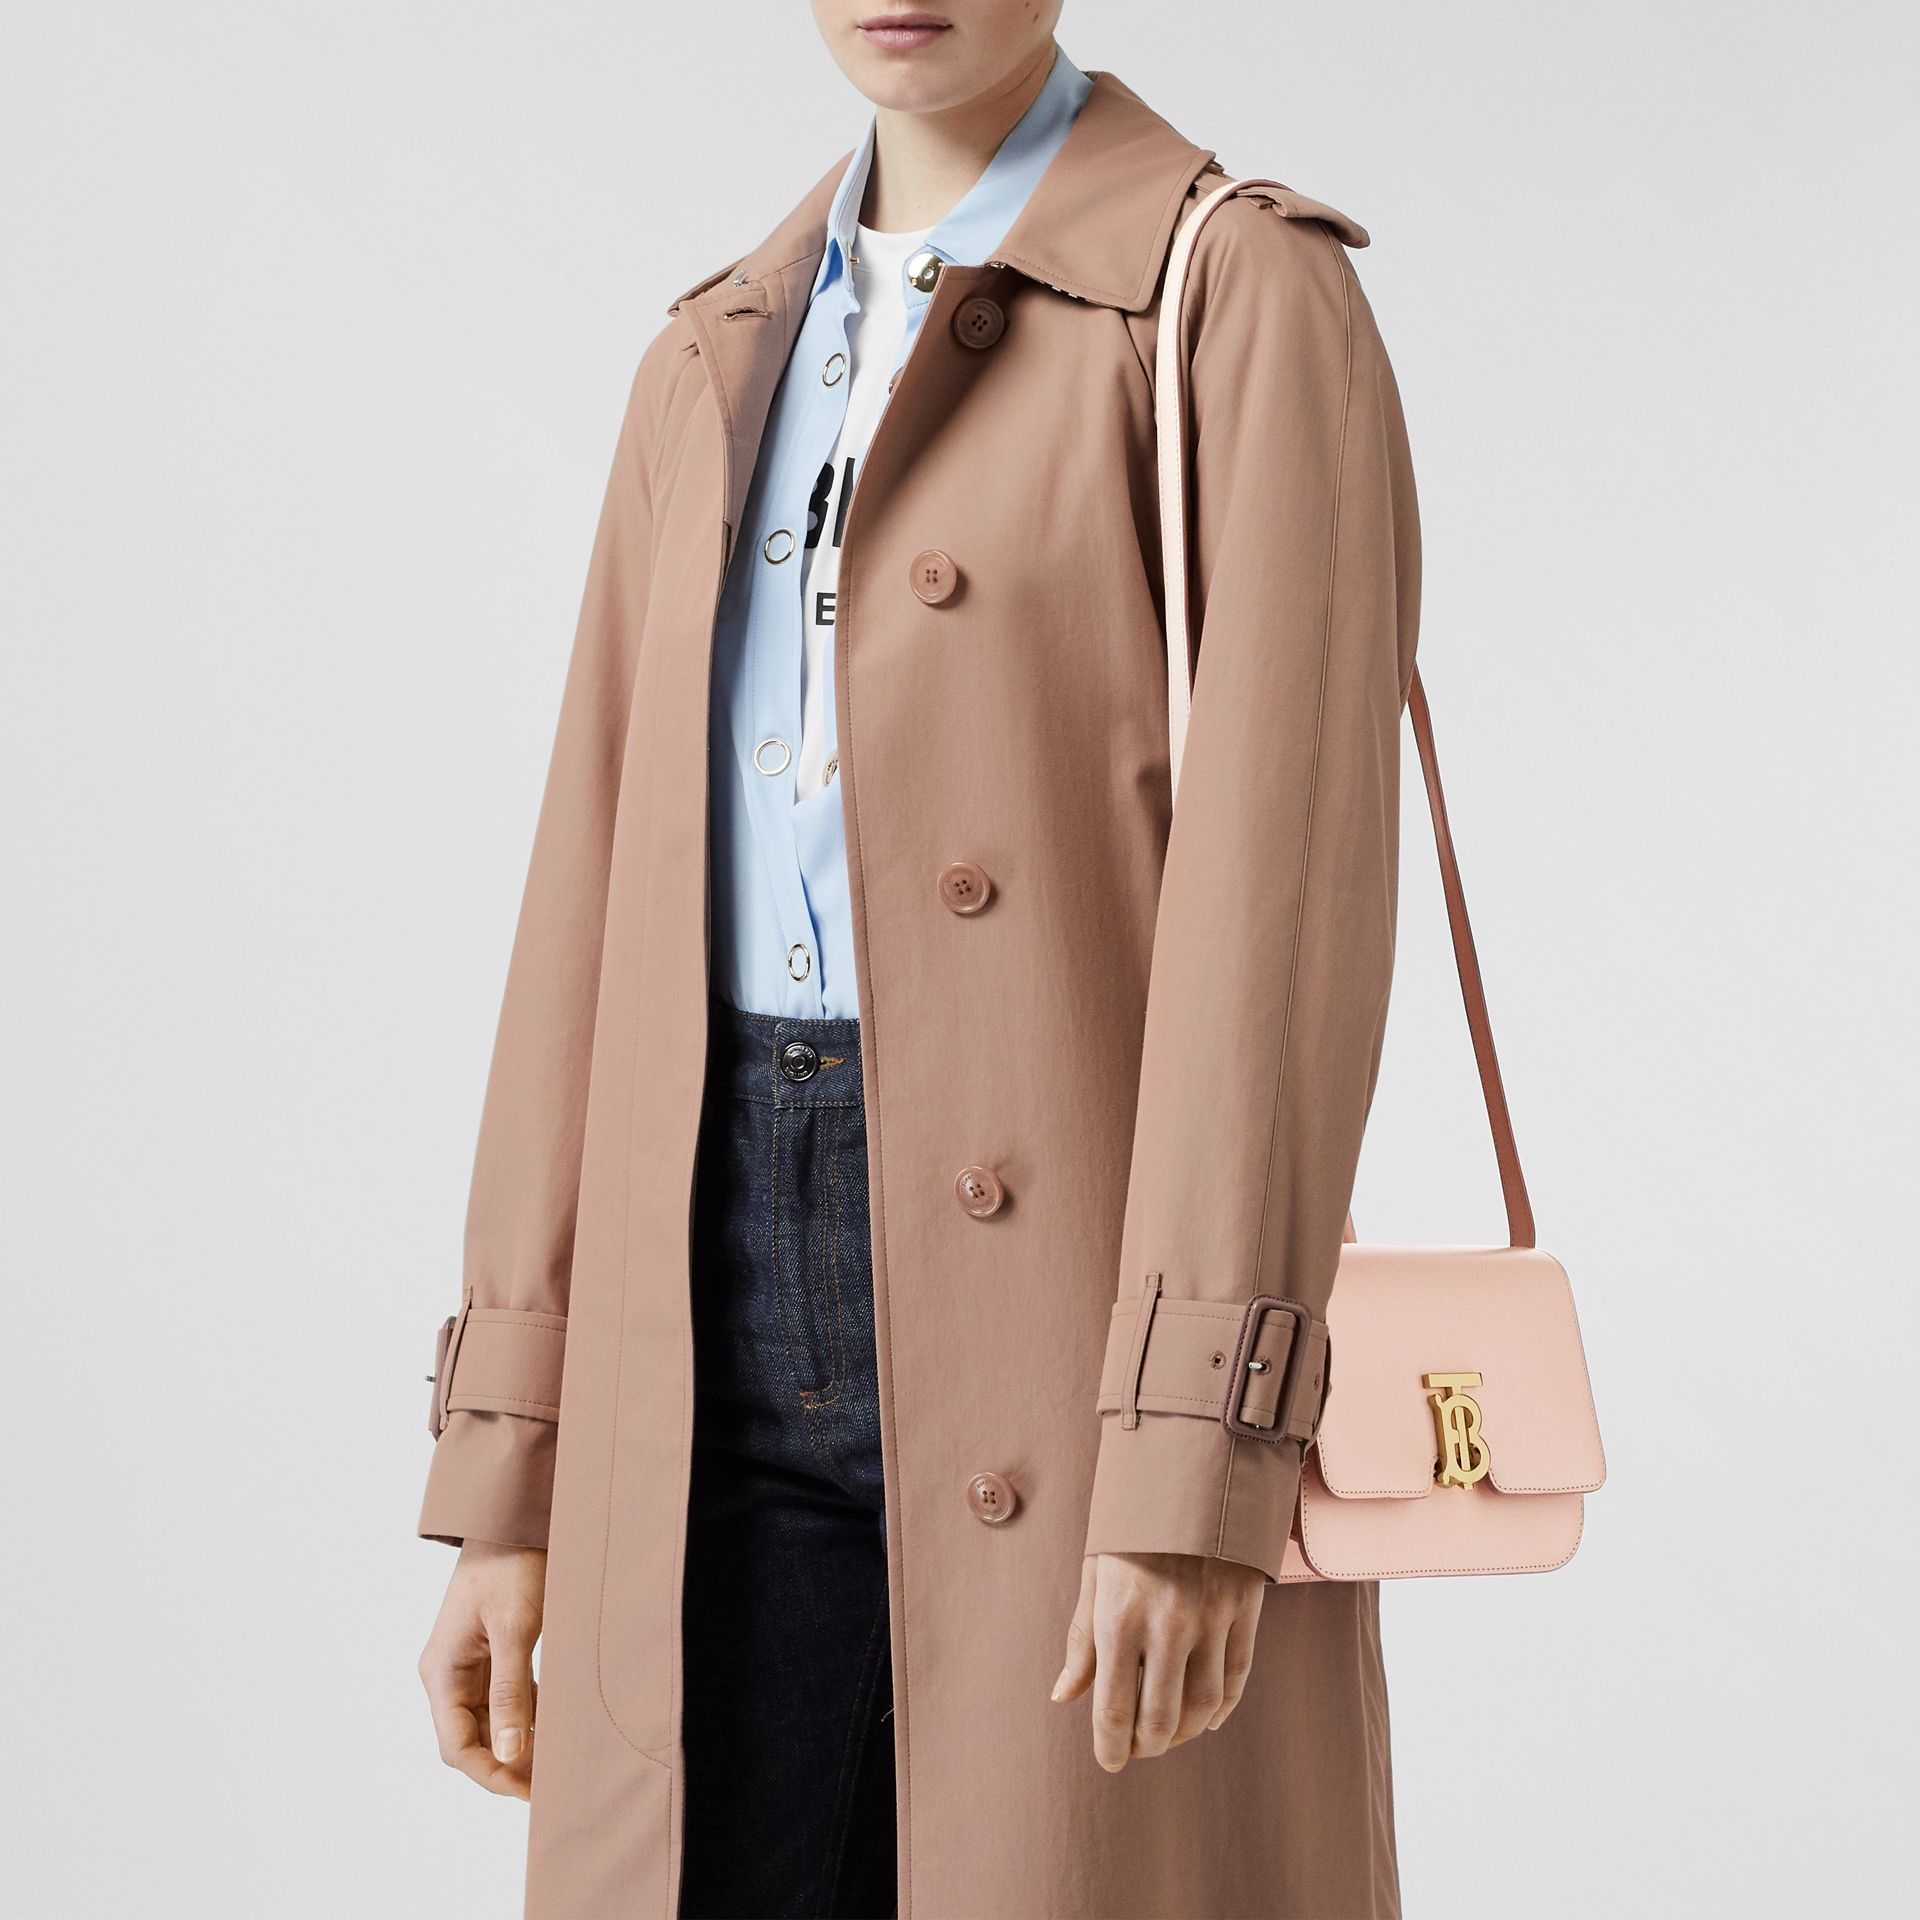 Small Leather TB Bag in Rose Beige - Women | Burberry - gallery image 2